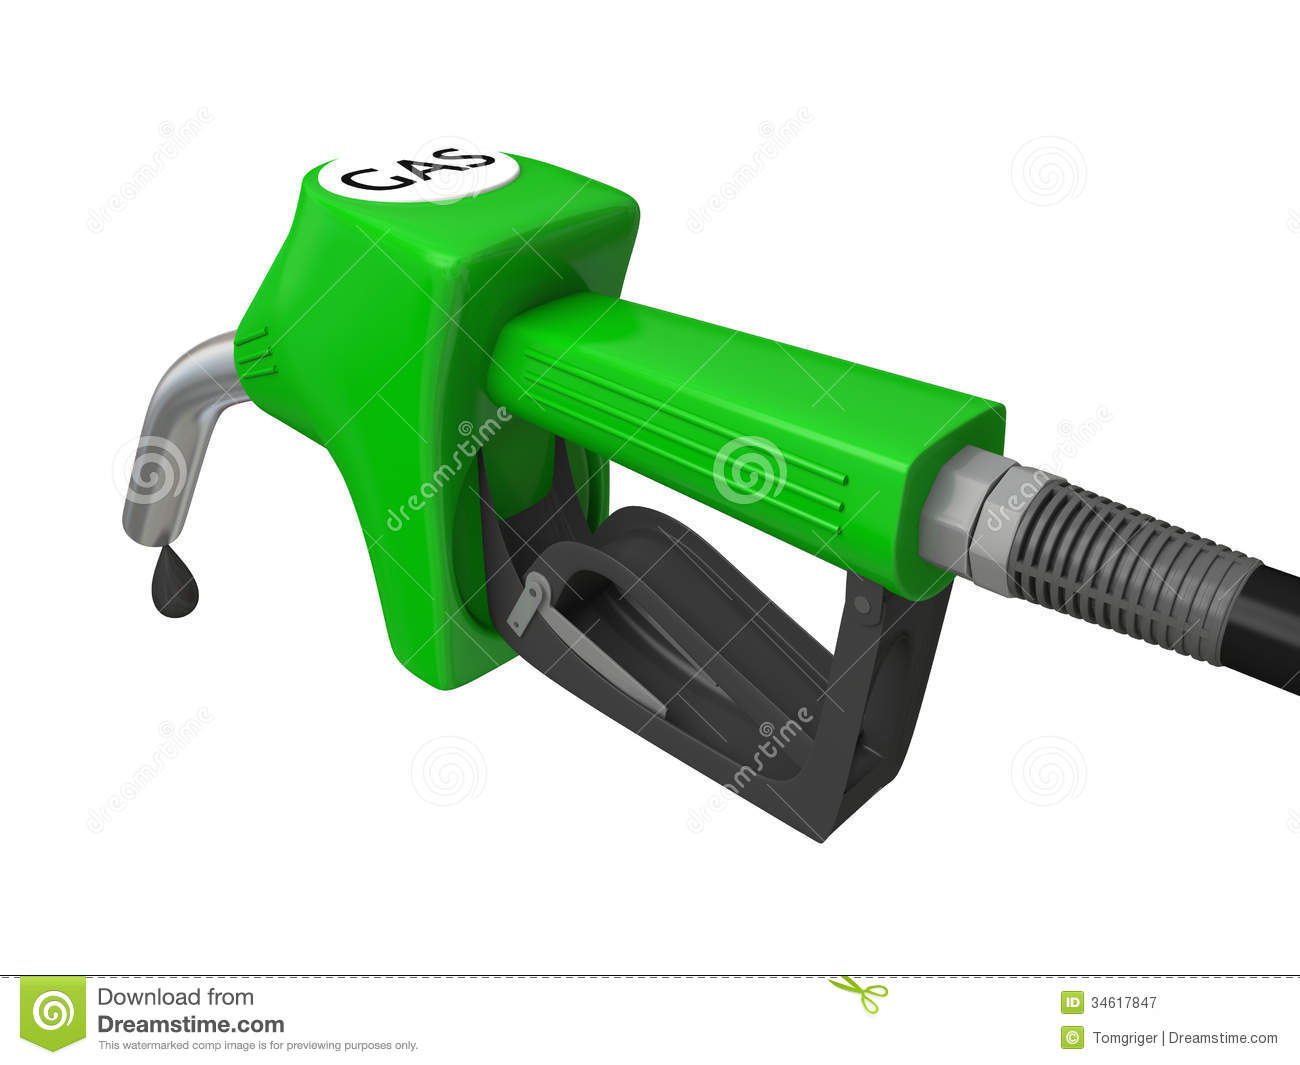 green or gasoline Chlorine gas is green, and there are probably many others.